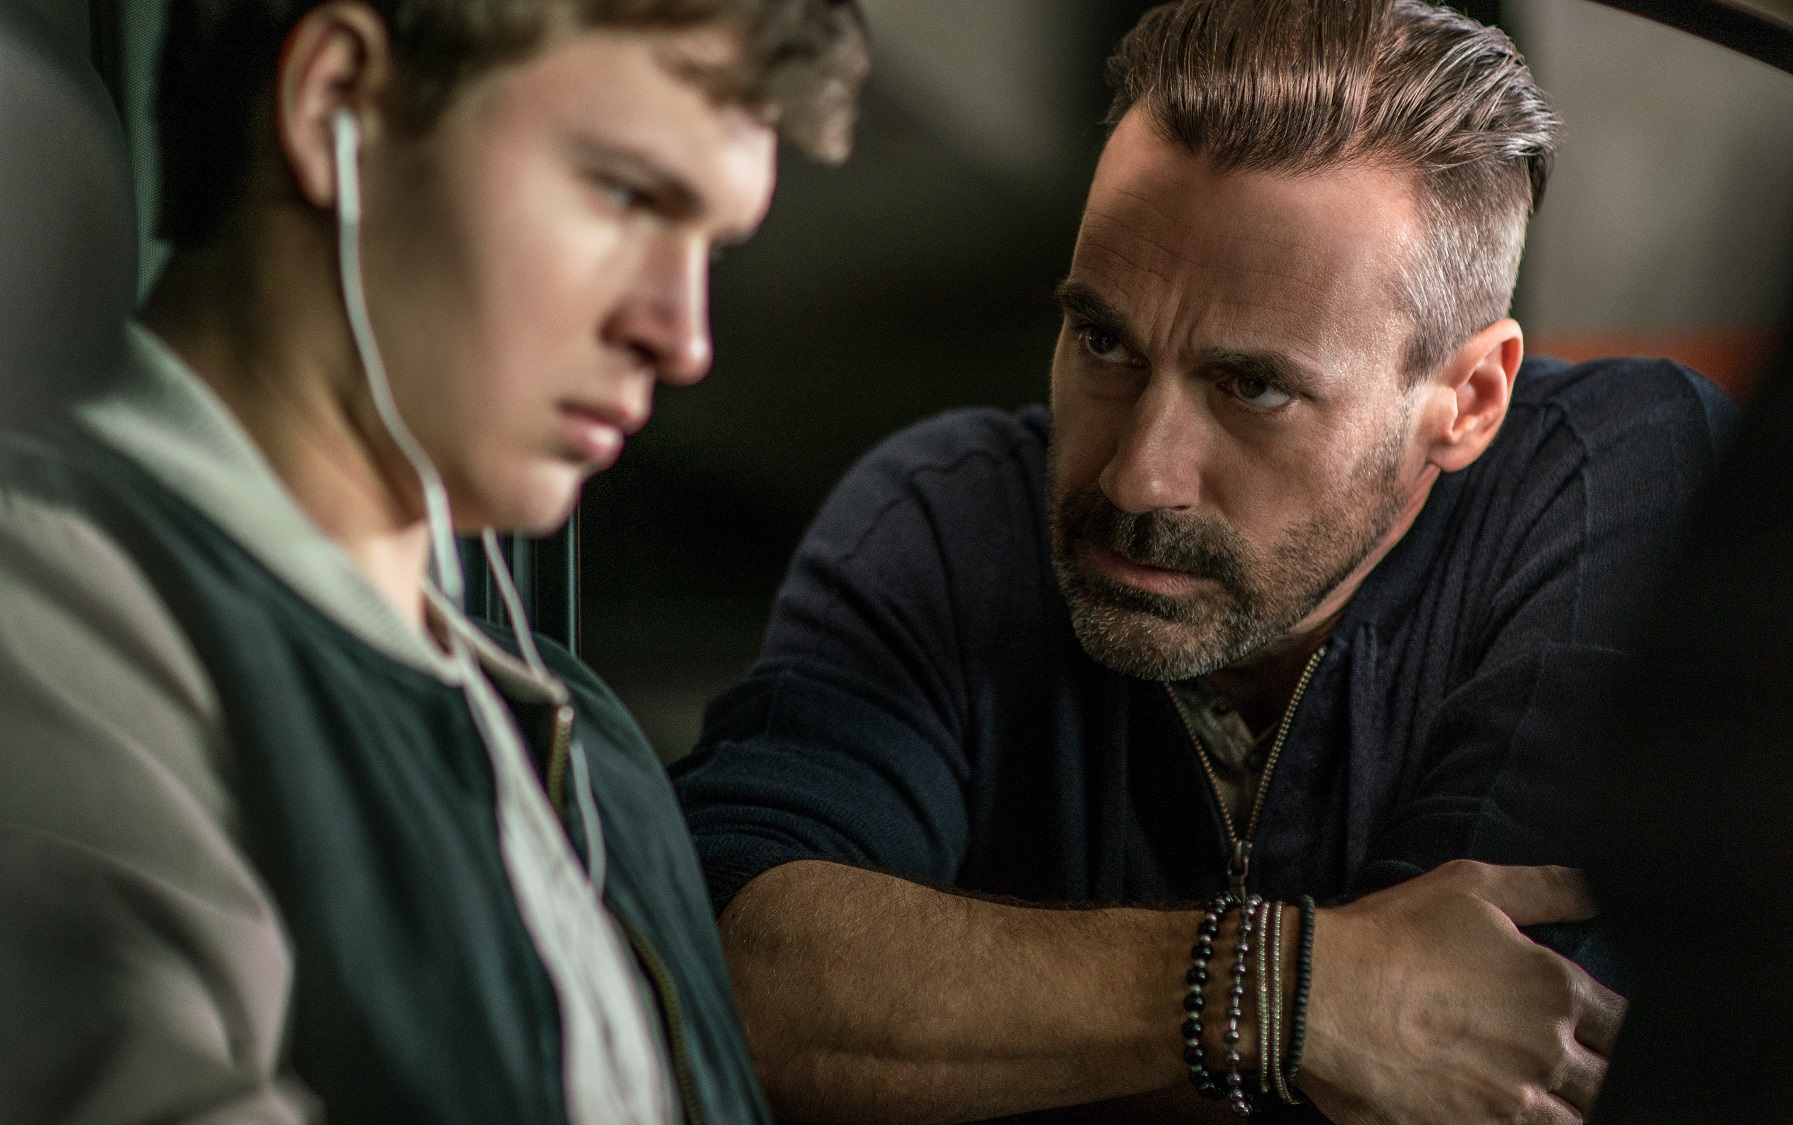 Buddy (Jon Hamm) and Baby (Ansel Elgort) in Baby Driver